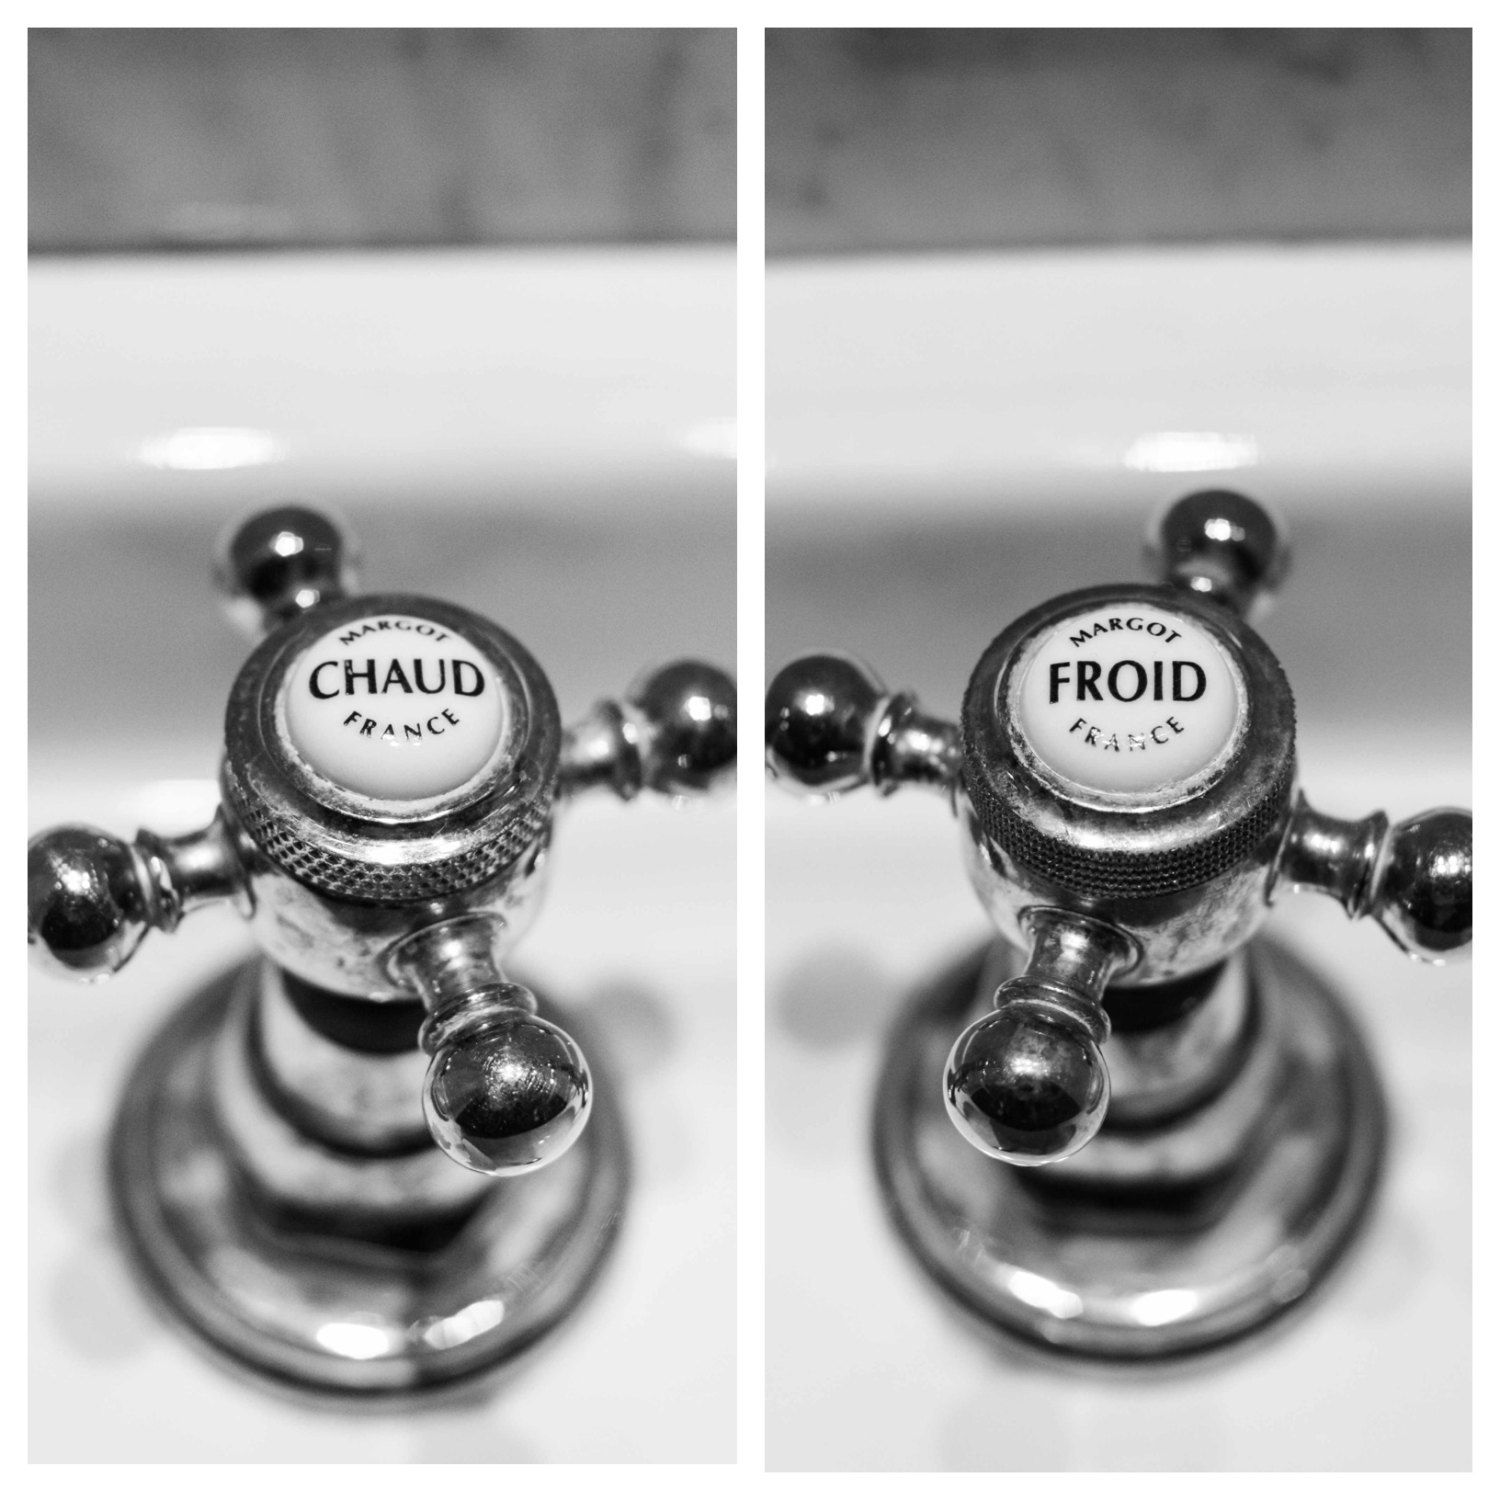 Pairs Photography French Bathroom Art Hot And Cold Set Of 2 8x10 Fine Photographs Home Decor Black White 50 00 Via Etsy